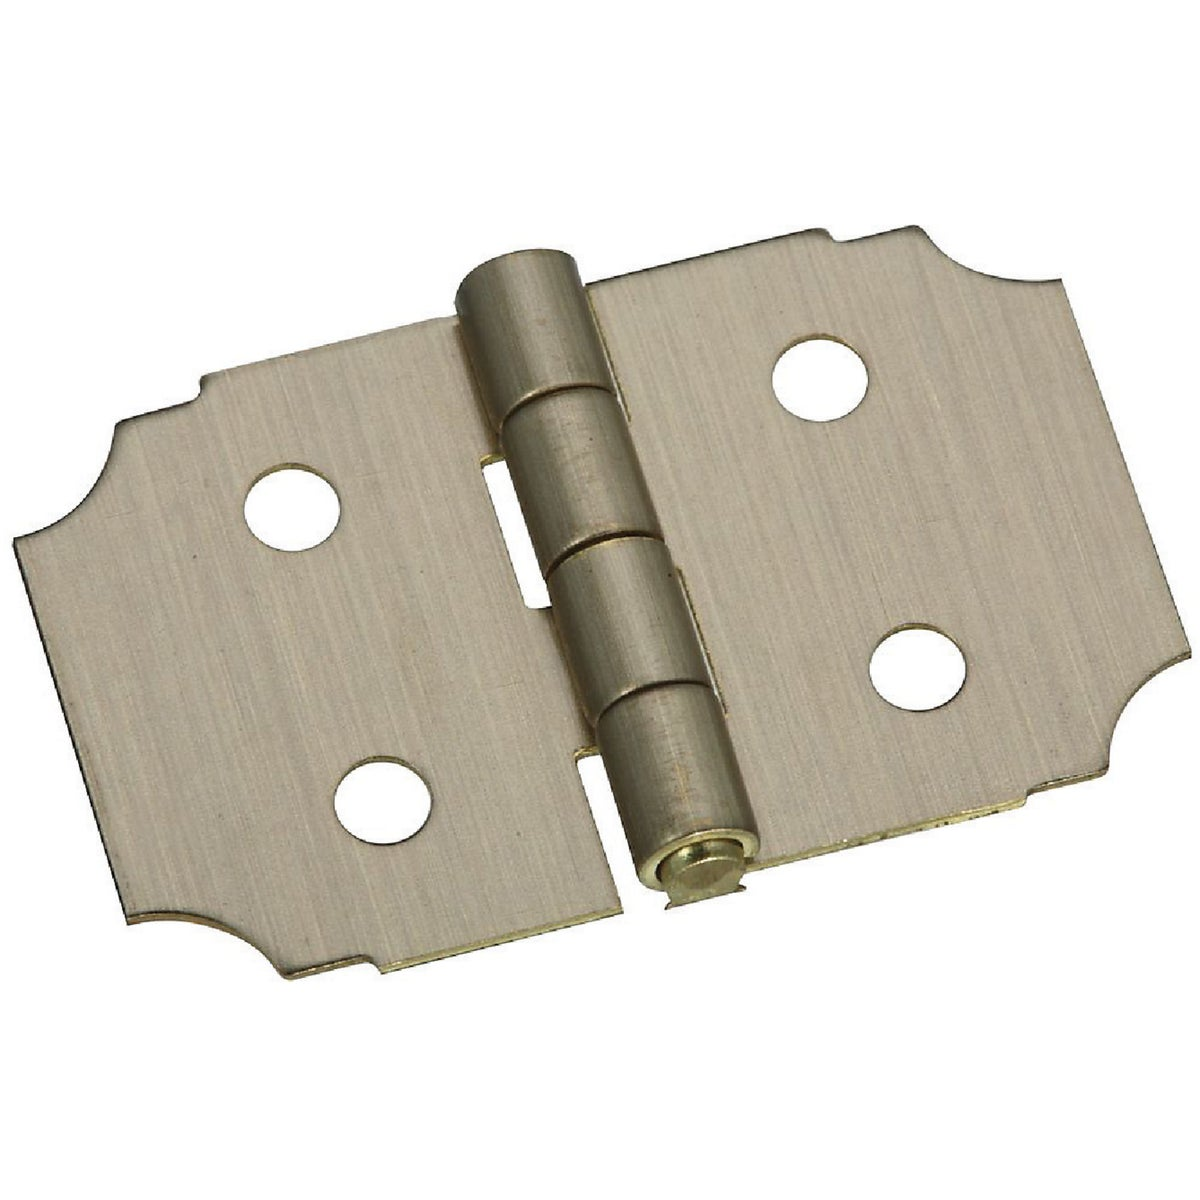 5/8X1 AB DECOR HINGE - N211458 by National Mfg Co